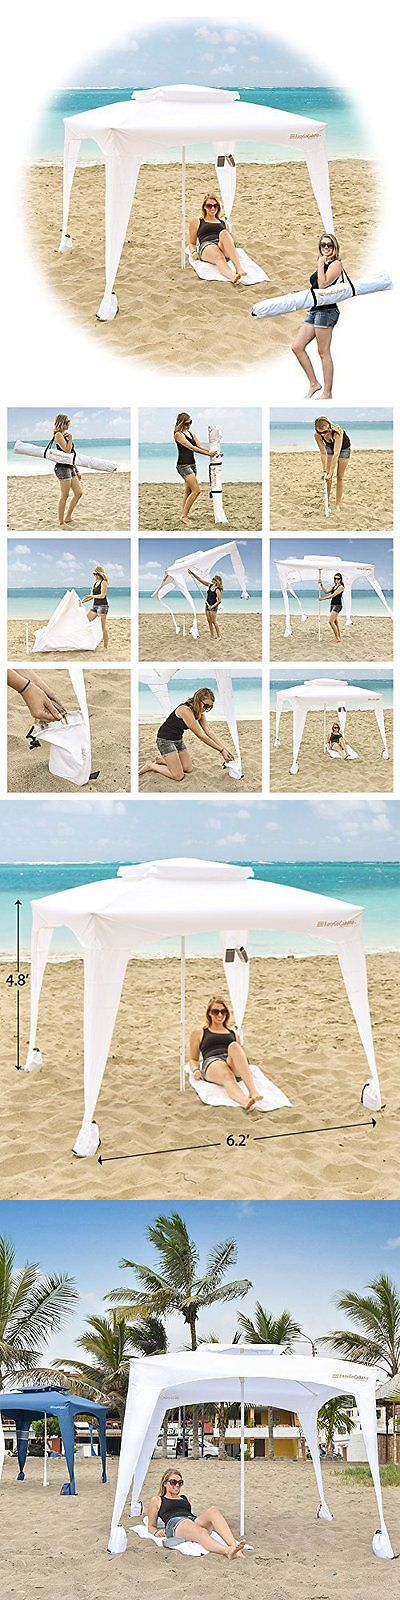 Canopies and Shelters 179011: White Large Cabana Beach Tent Canopy Umbrella Outdoor Sun Uv Shelter Camping New -> BUY IT NOW ONLY: $76.22 on eBay!